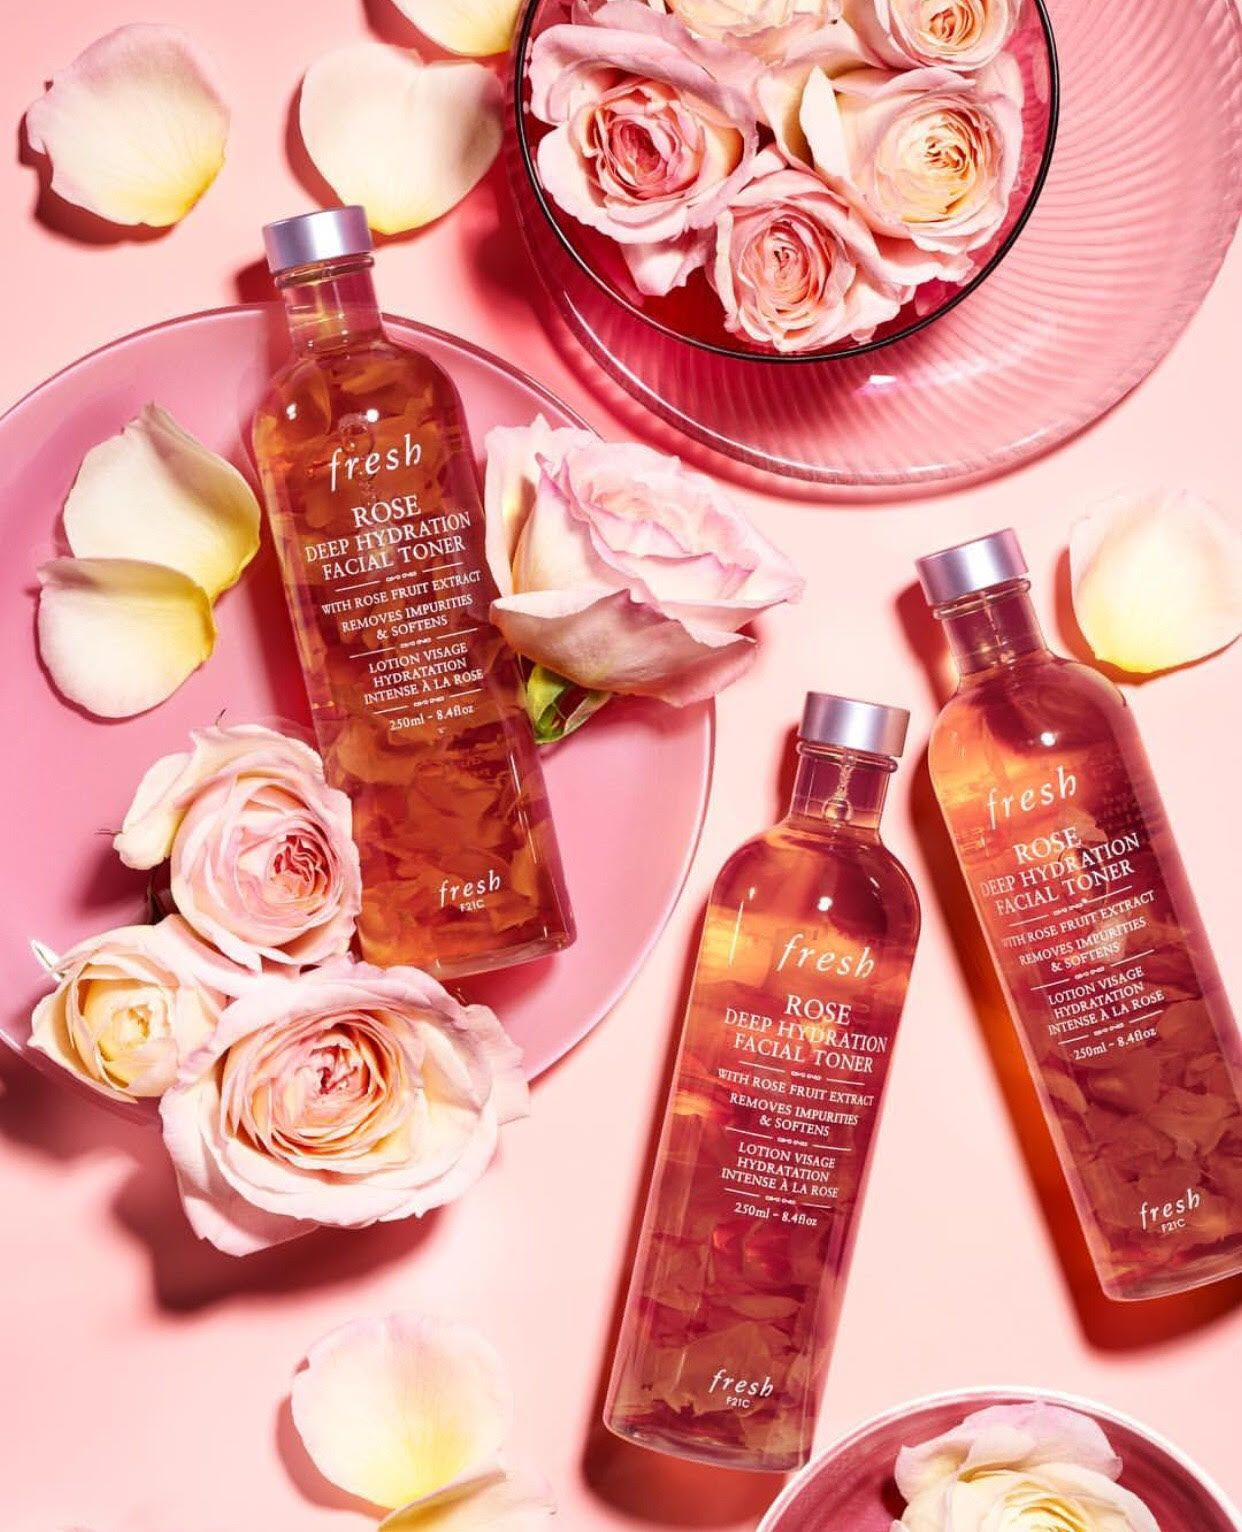 This rose toner water feels so amazing on my skin! It smells